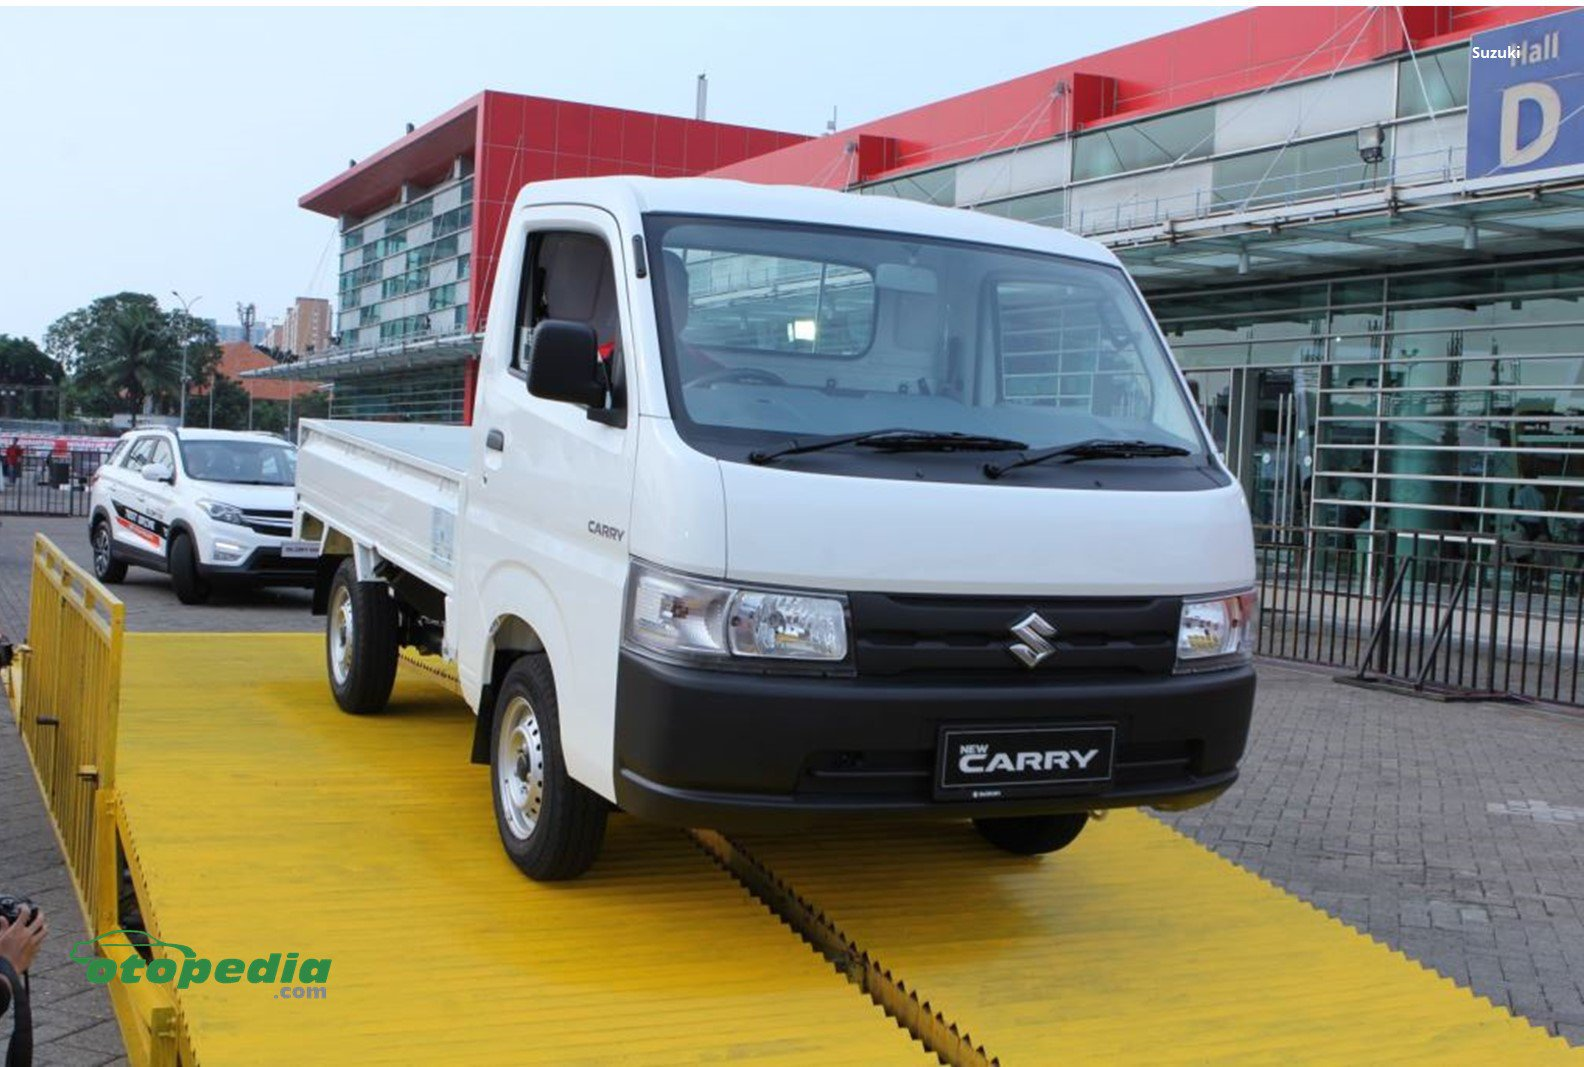 Suzuki Carry.jpg